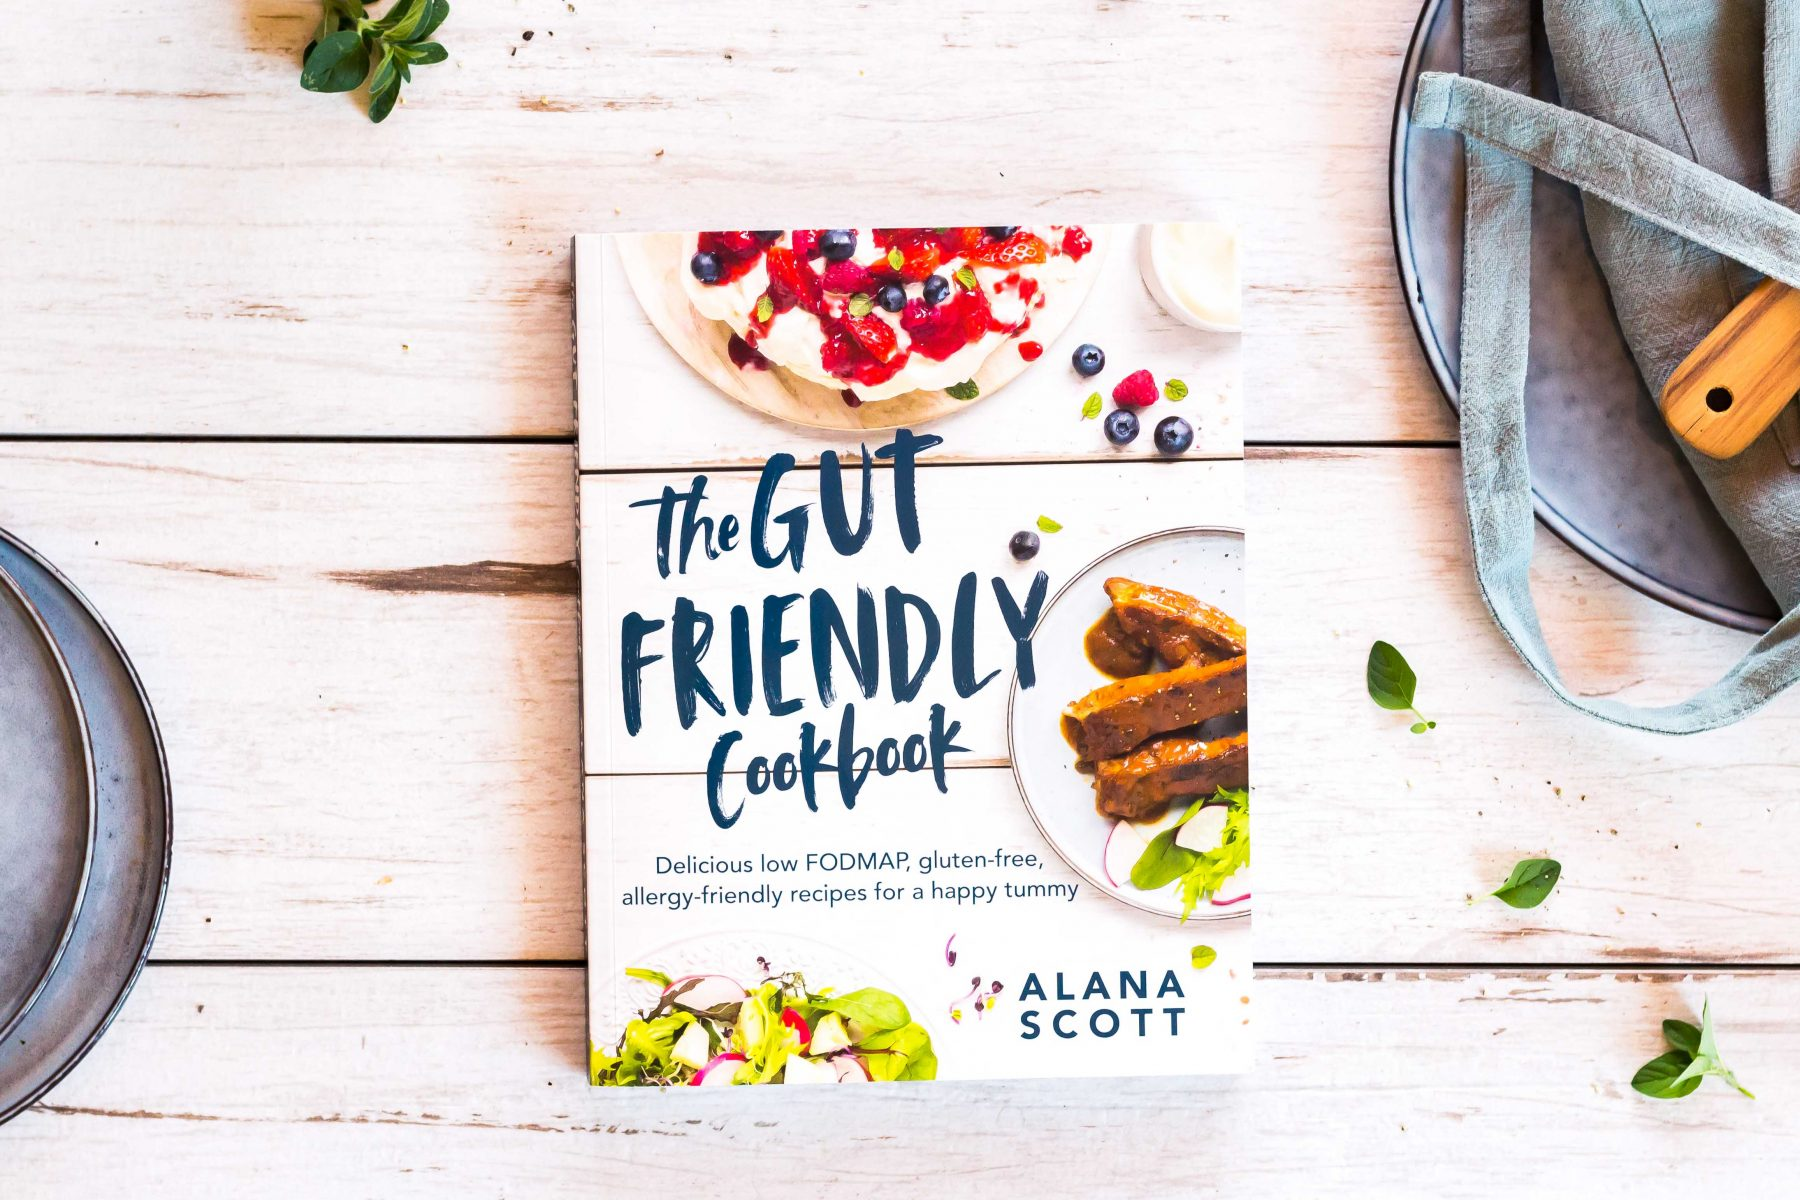 The Gut Friendly Cookbook Low FODMAP Cookbook